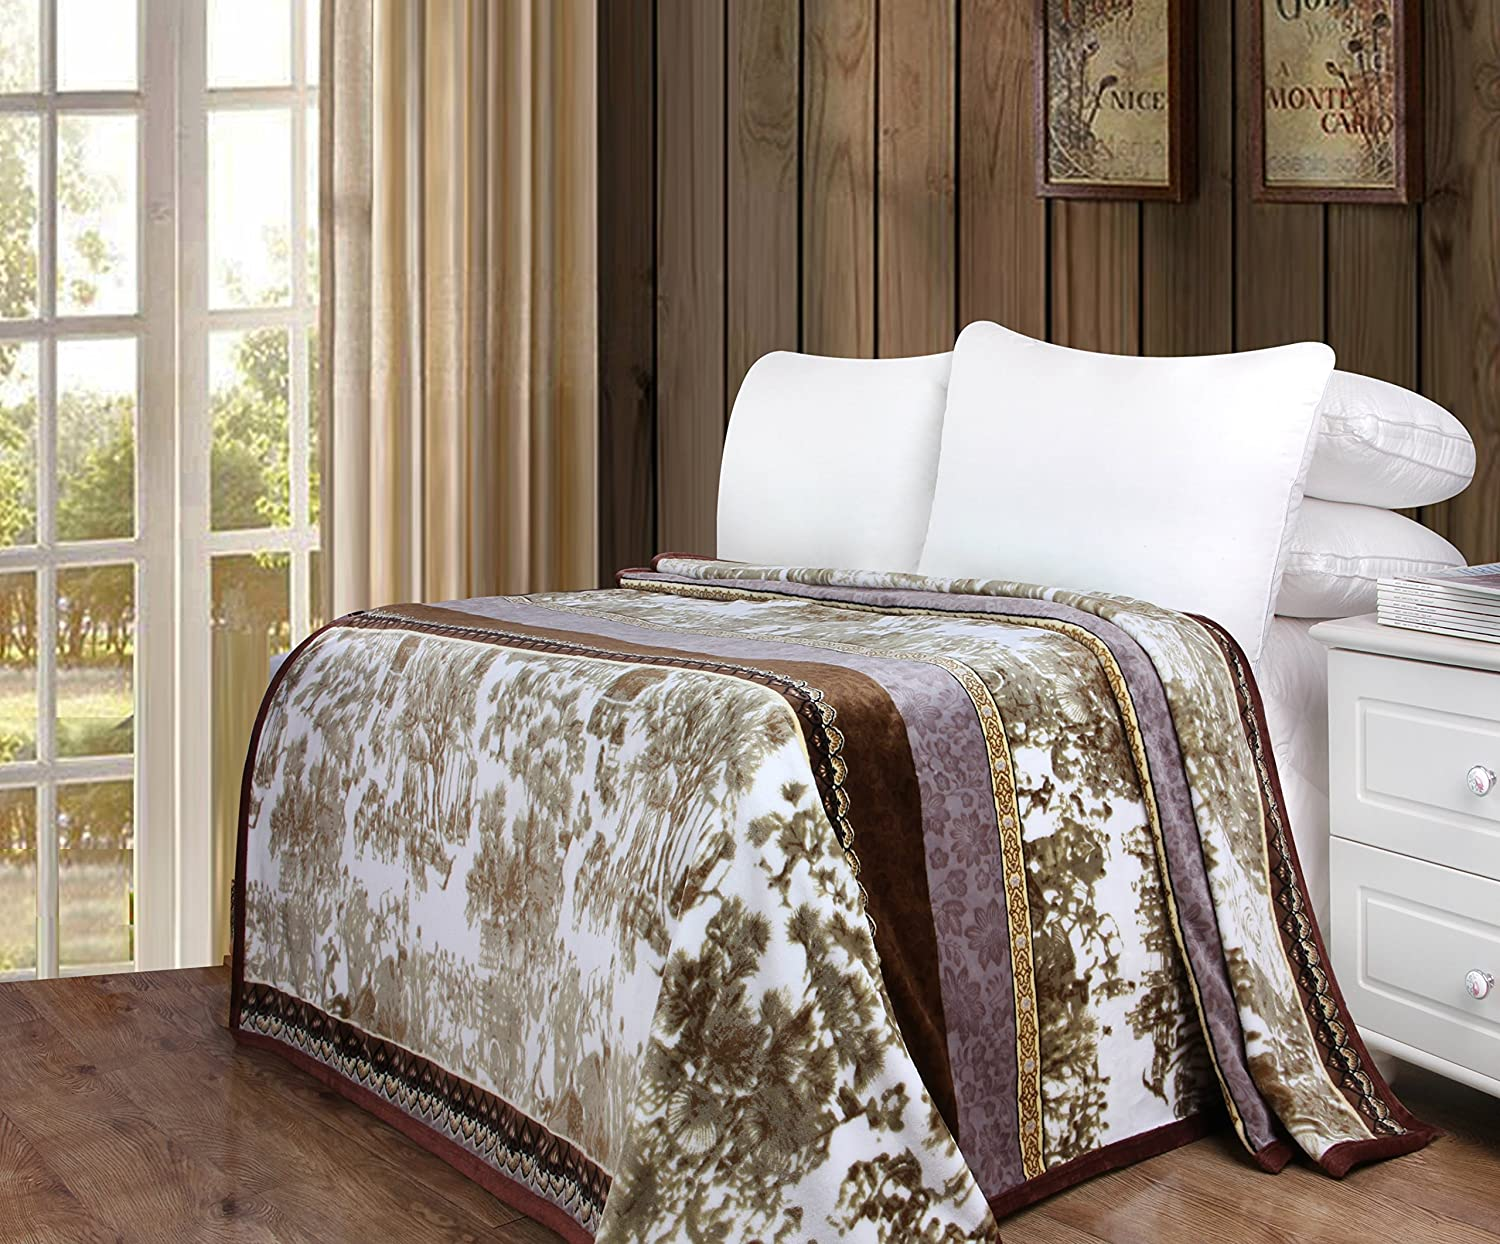 set reflections shld duvet pc metallic comforter getimage s paisley grand url resort cover